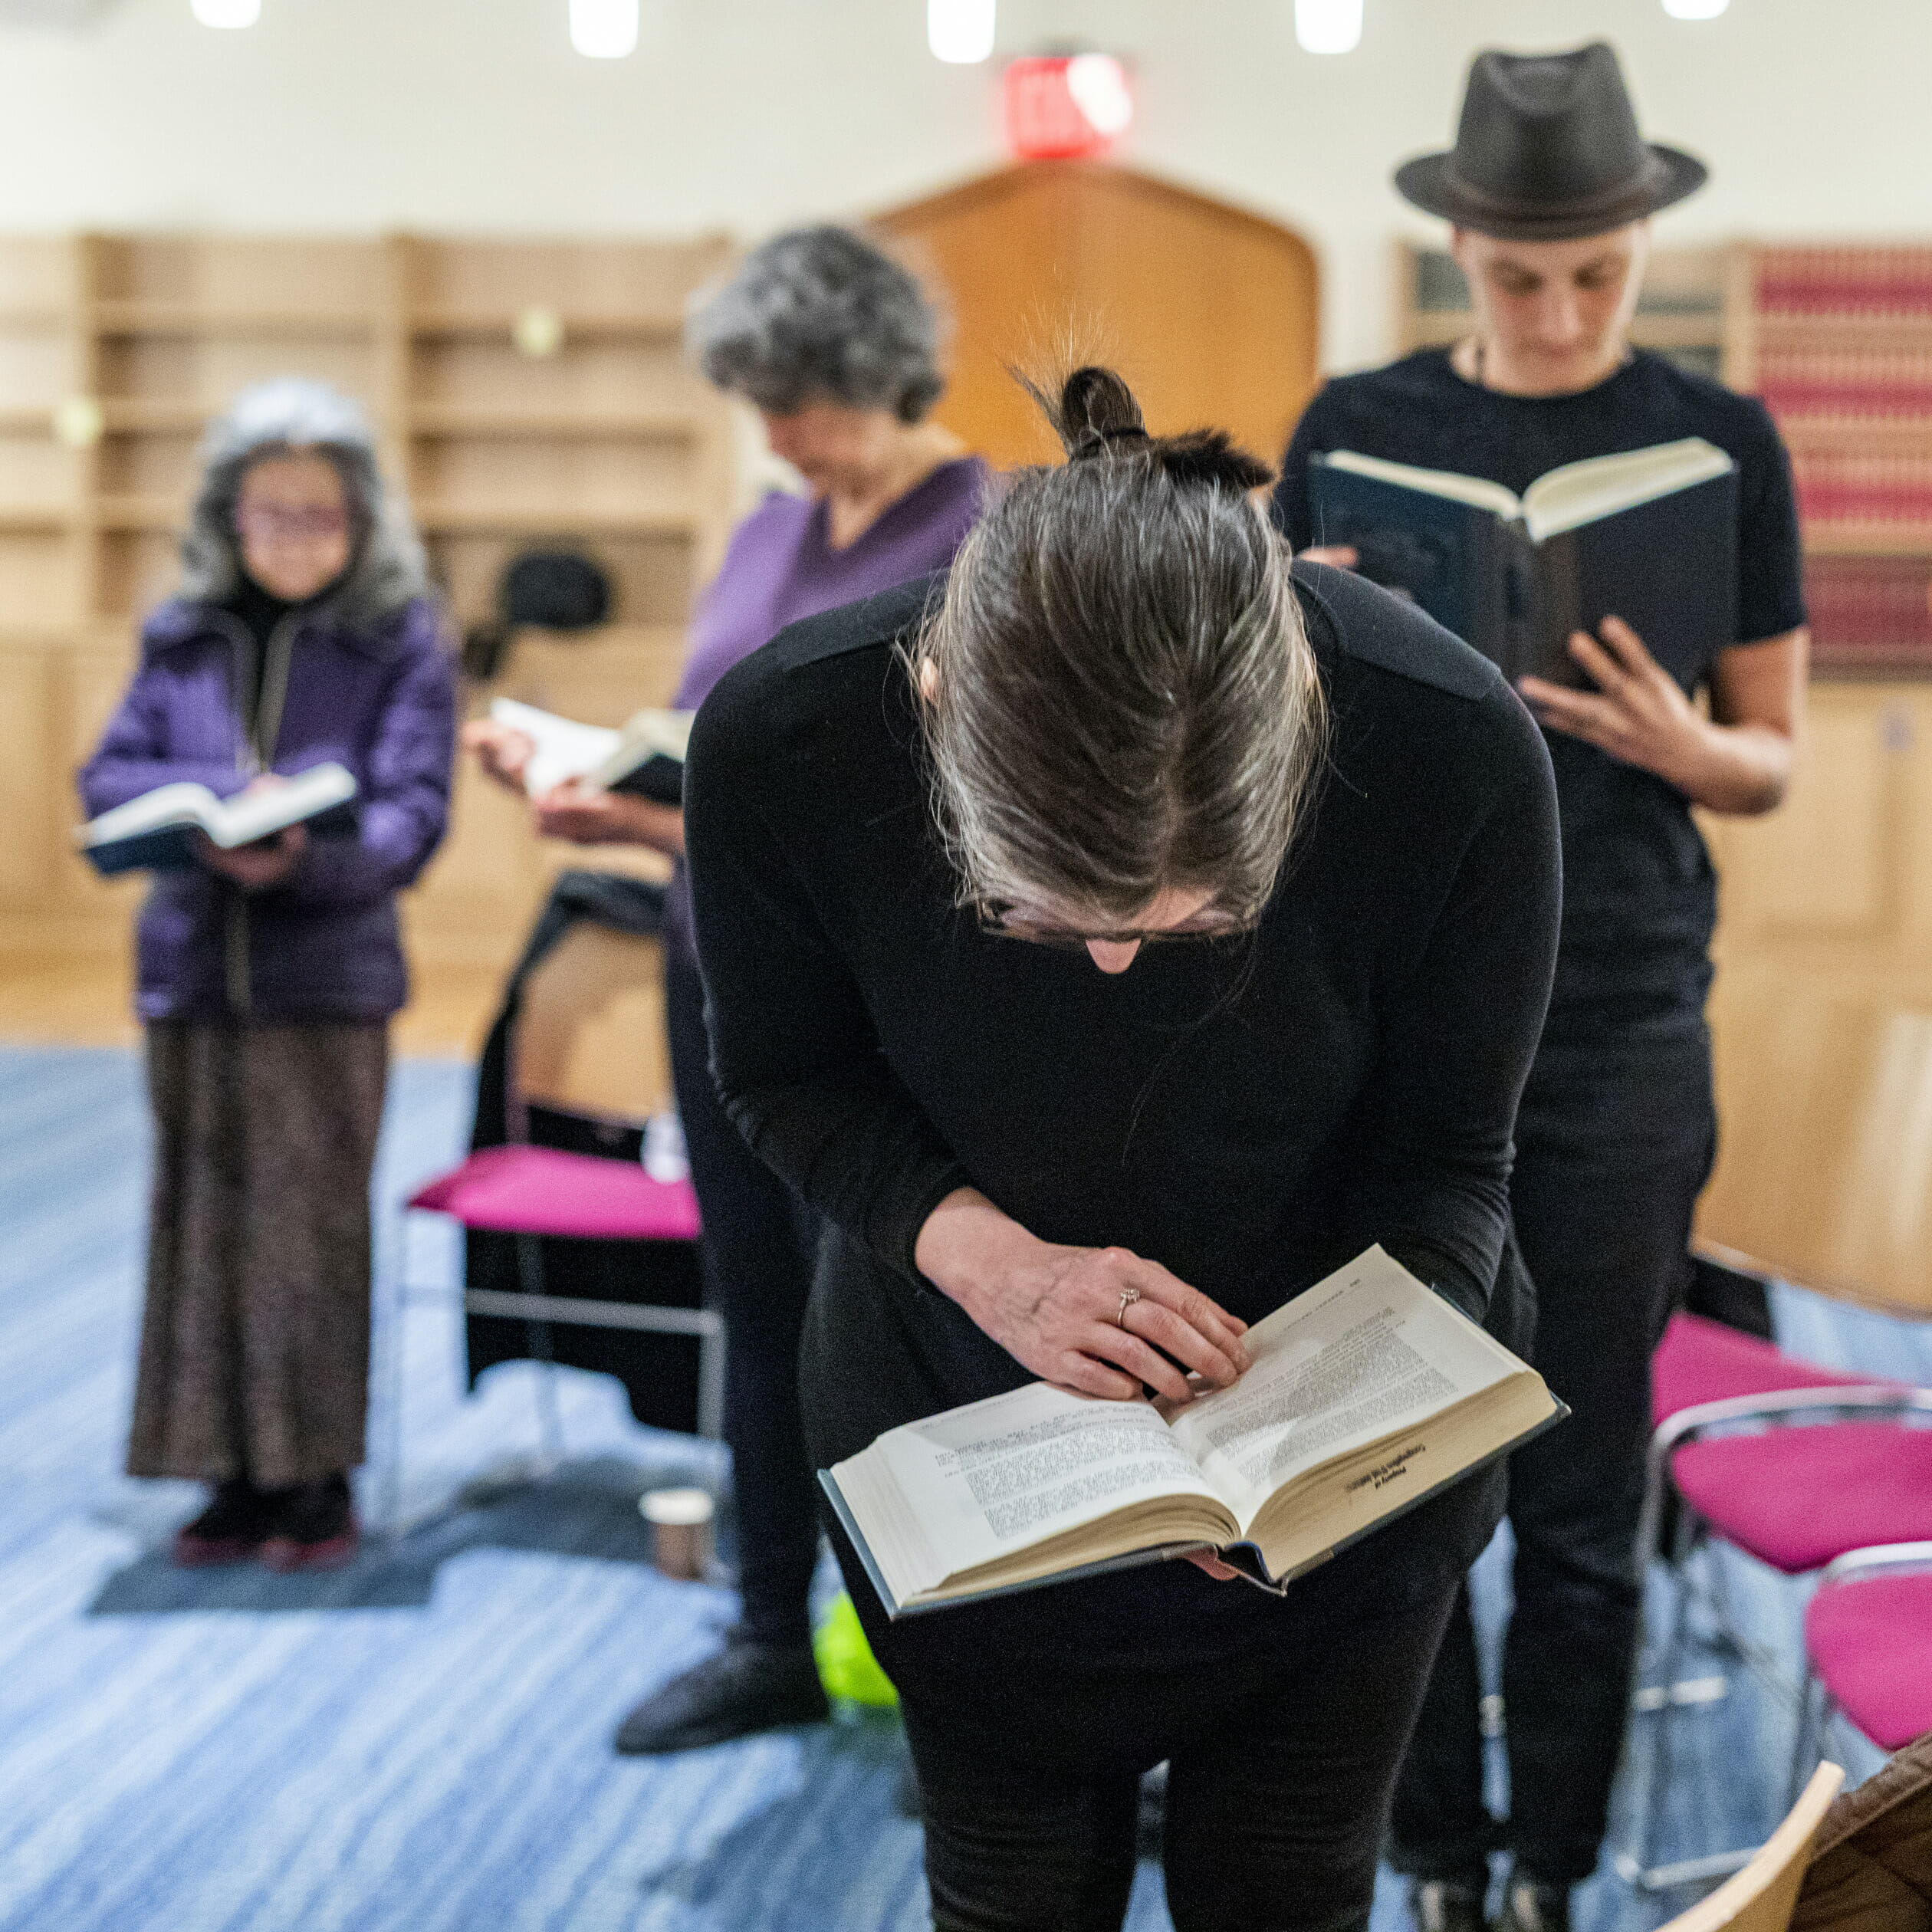 b'nai jeshurun members reading together